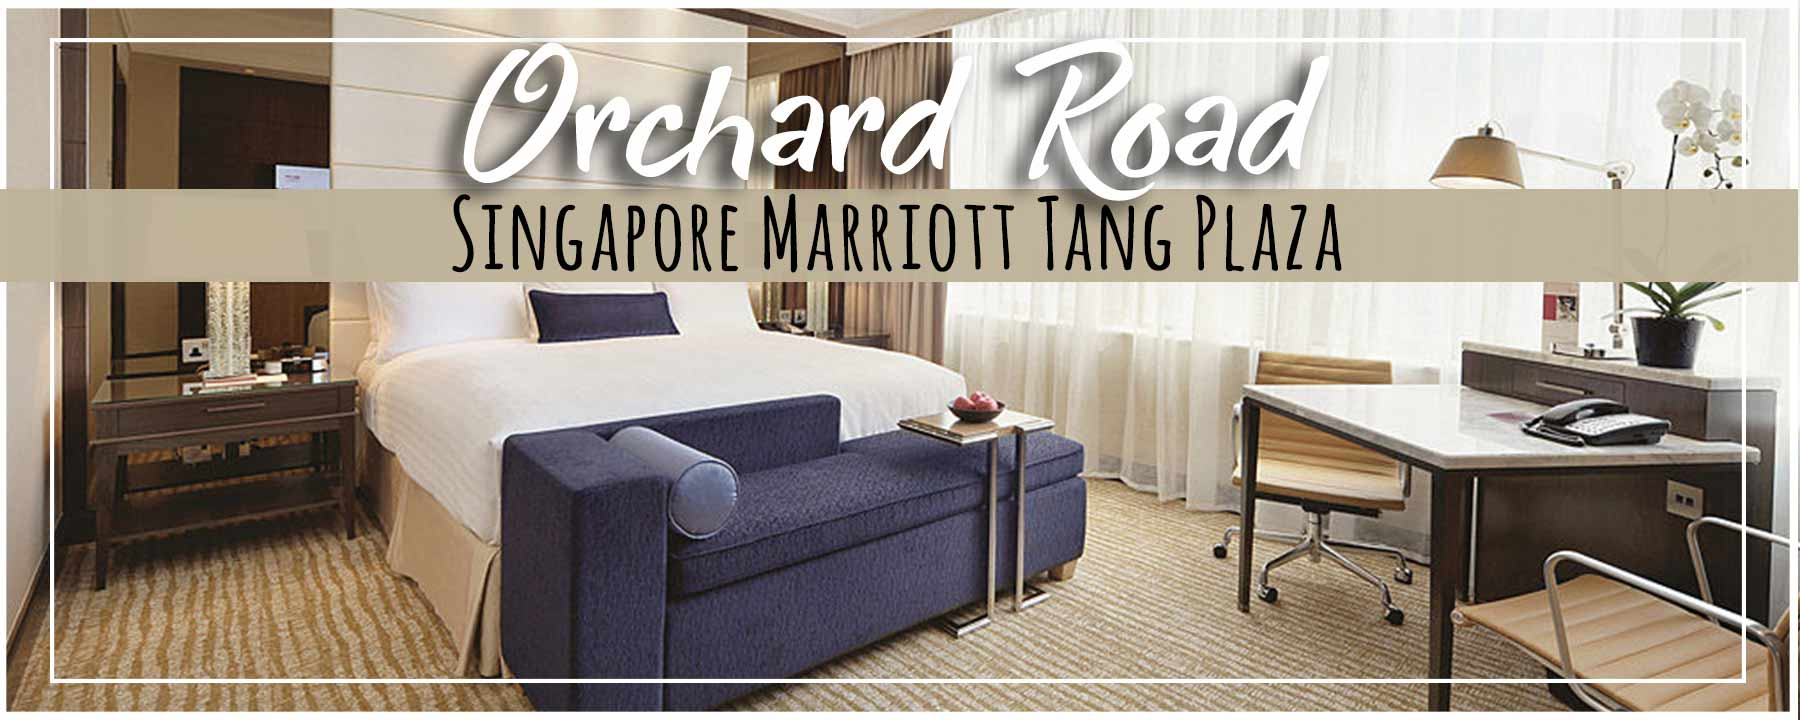 Singapore Marriott Tang Plaza Hotel | Orchard Road